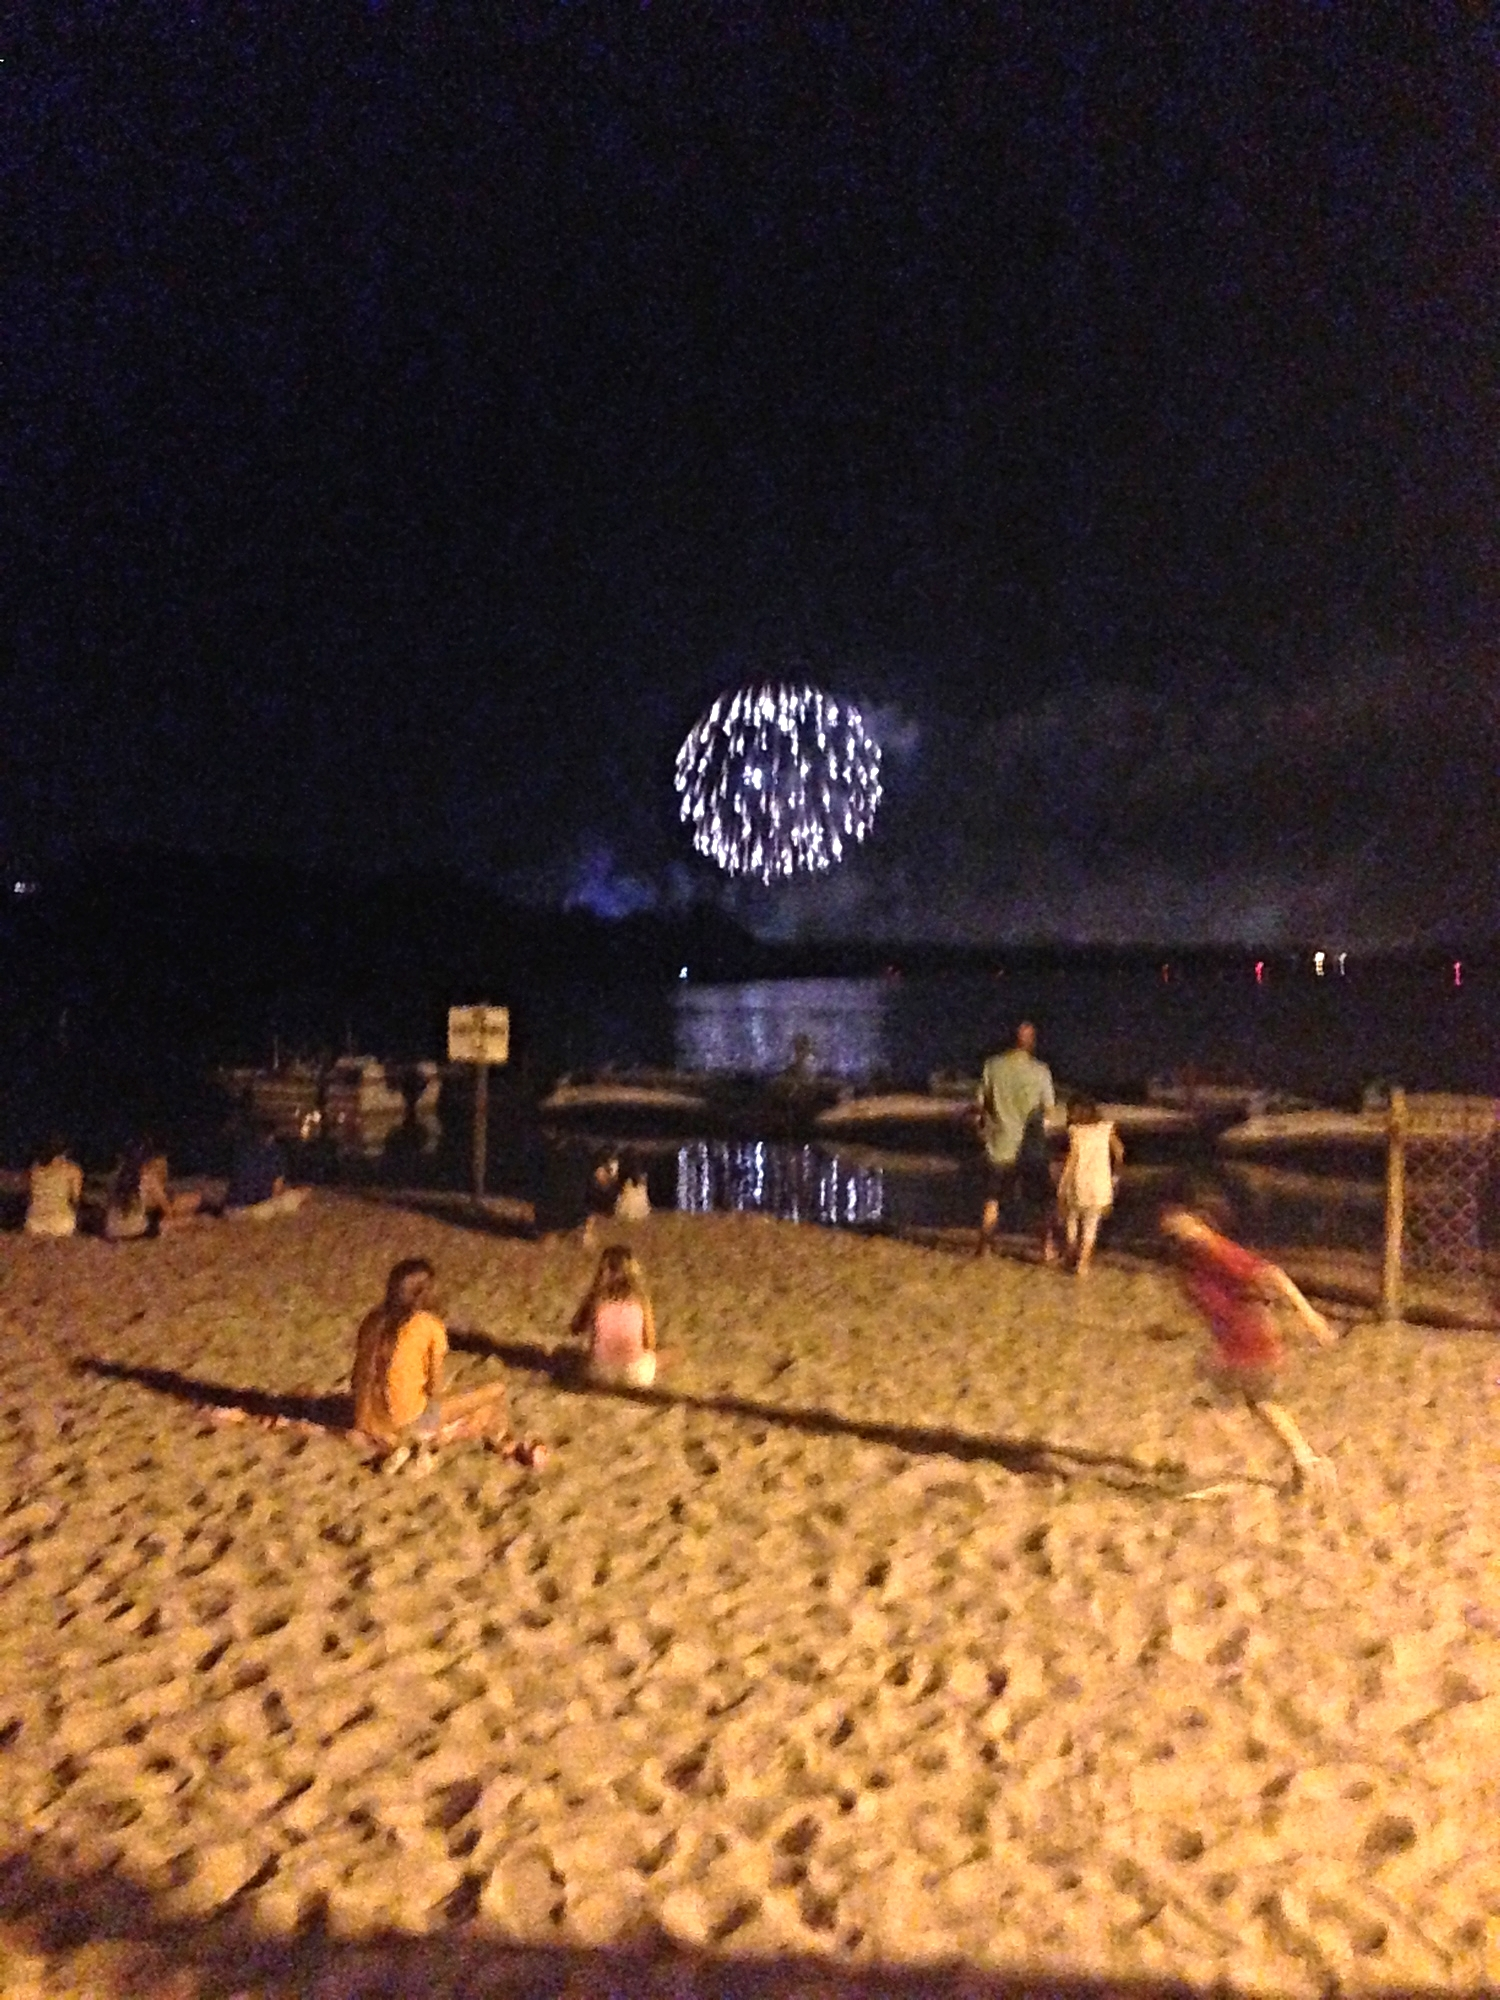 Watching the nightly fireworks from the resort beaches.